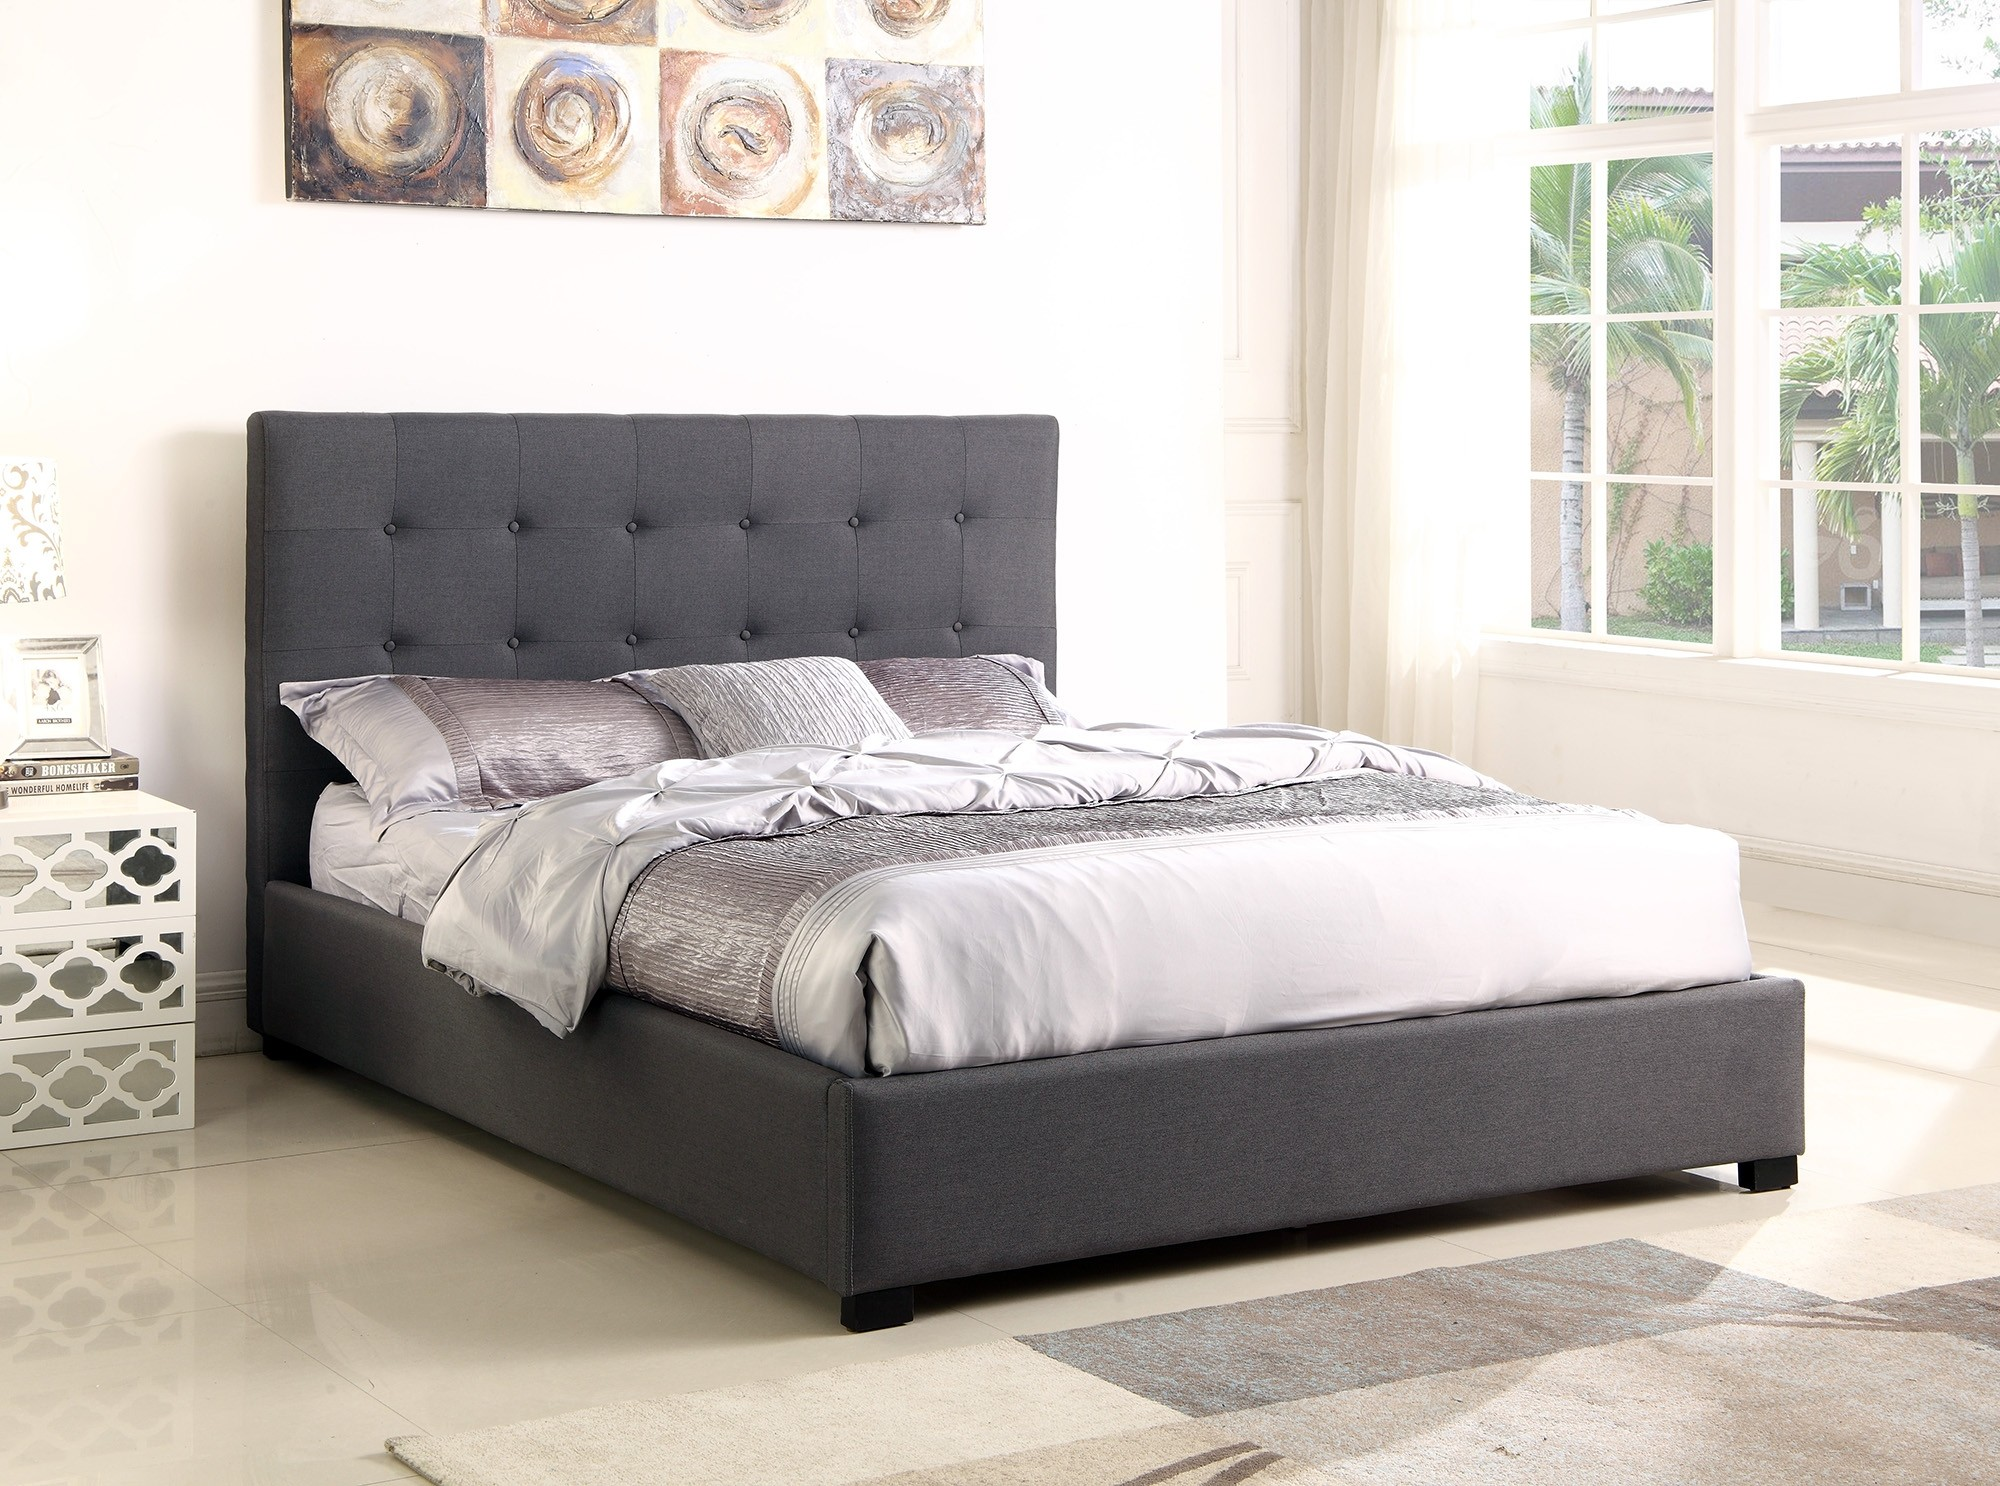 lit coffre layton sommier 140cm tissu gris lits 2 places. Black Bedroom Furniture Sets. Home Design Ideas